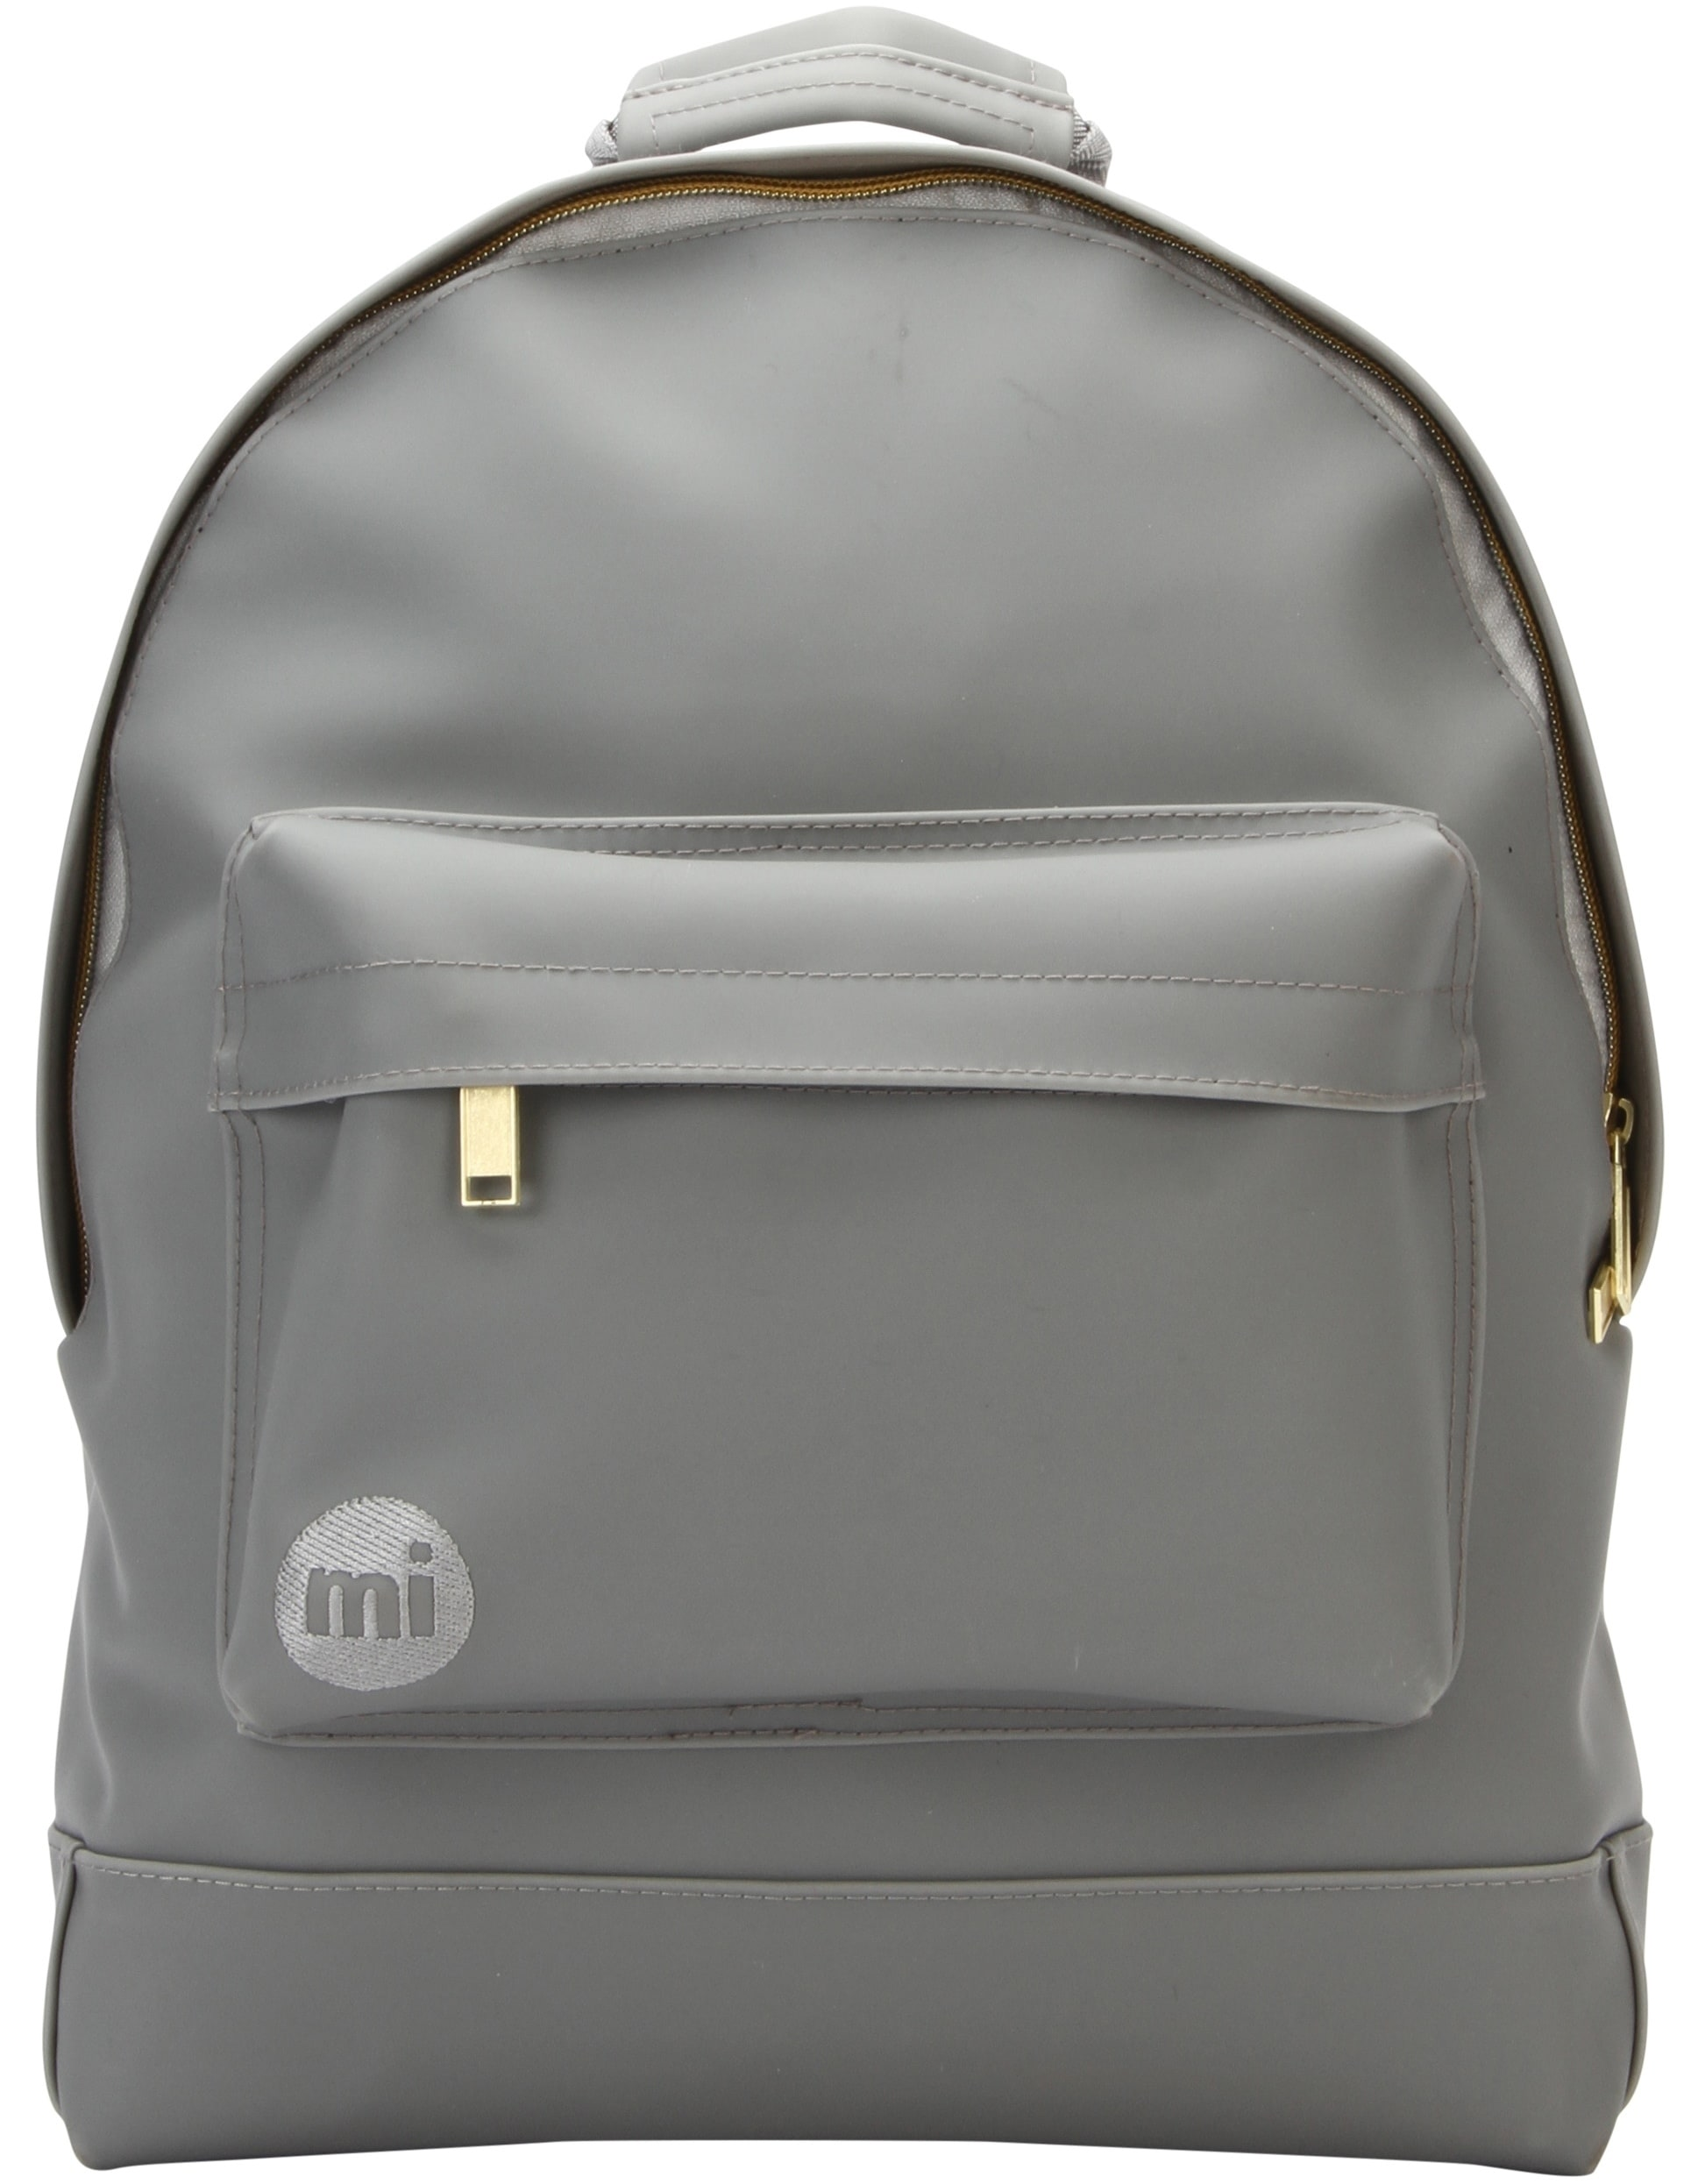 MiPac Rubber Backpack  Grey